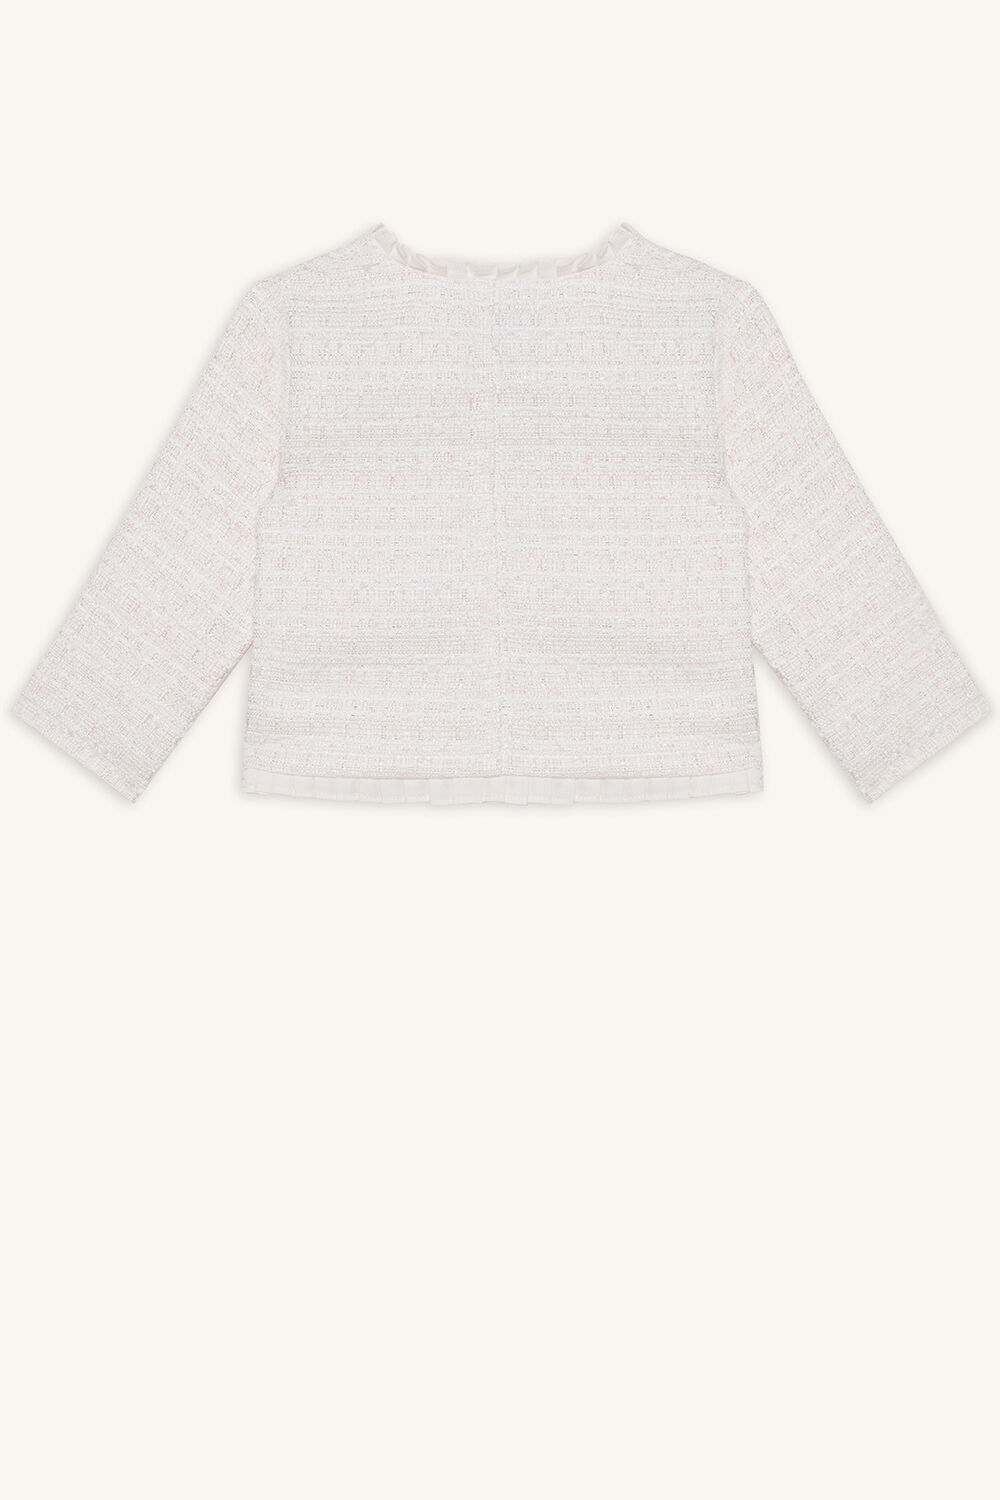 COCO FRILL JACKET in colour CRYSTAL PINK